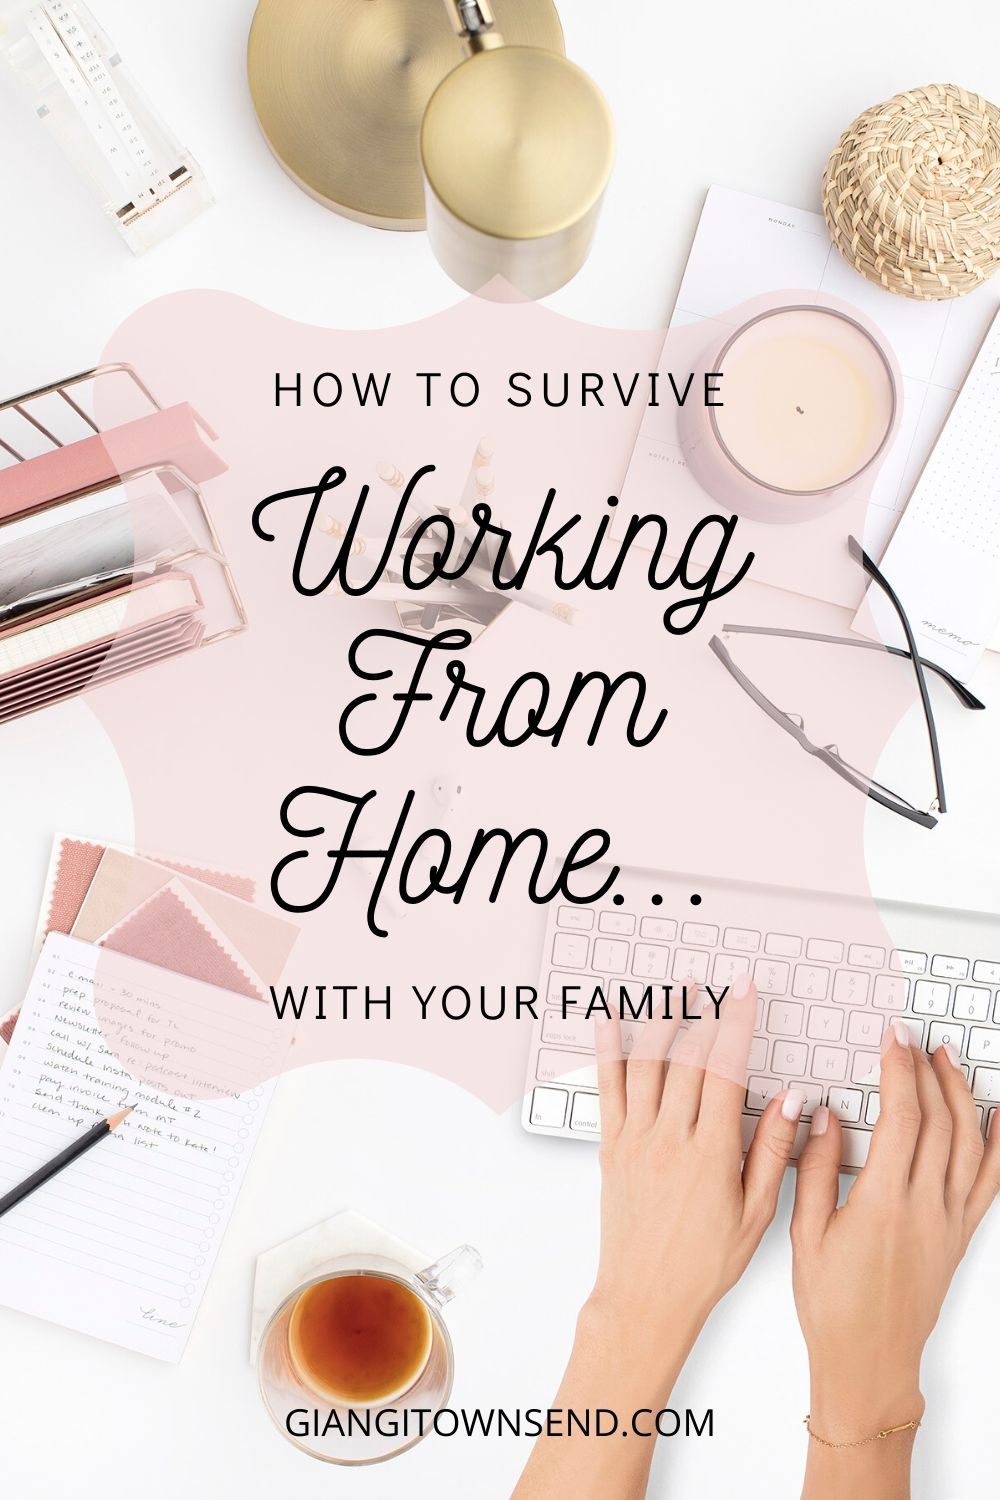 How To Survive Working From Home ... With Your Family